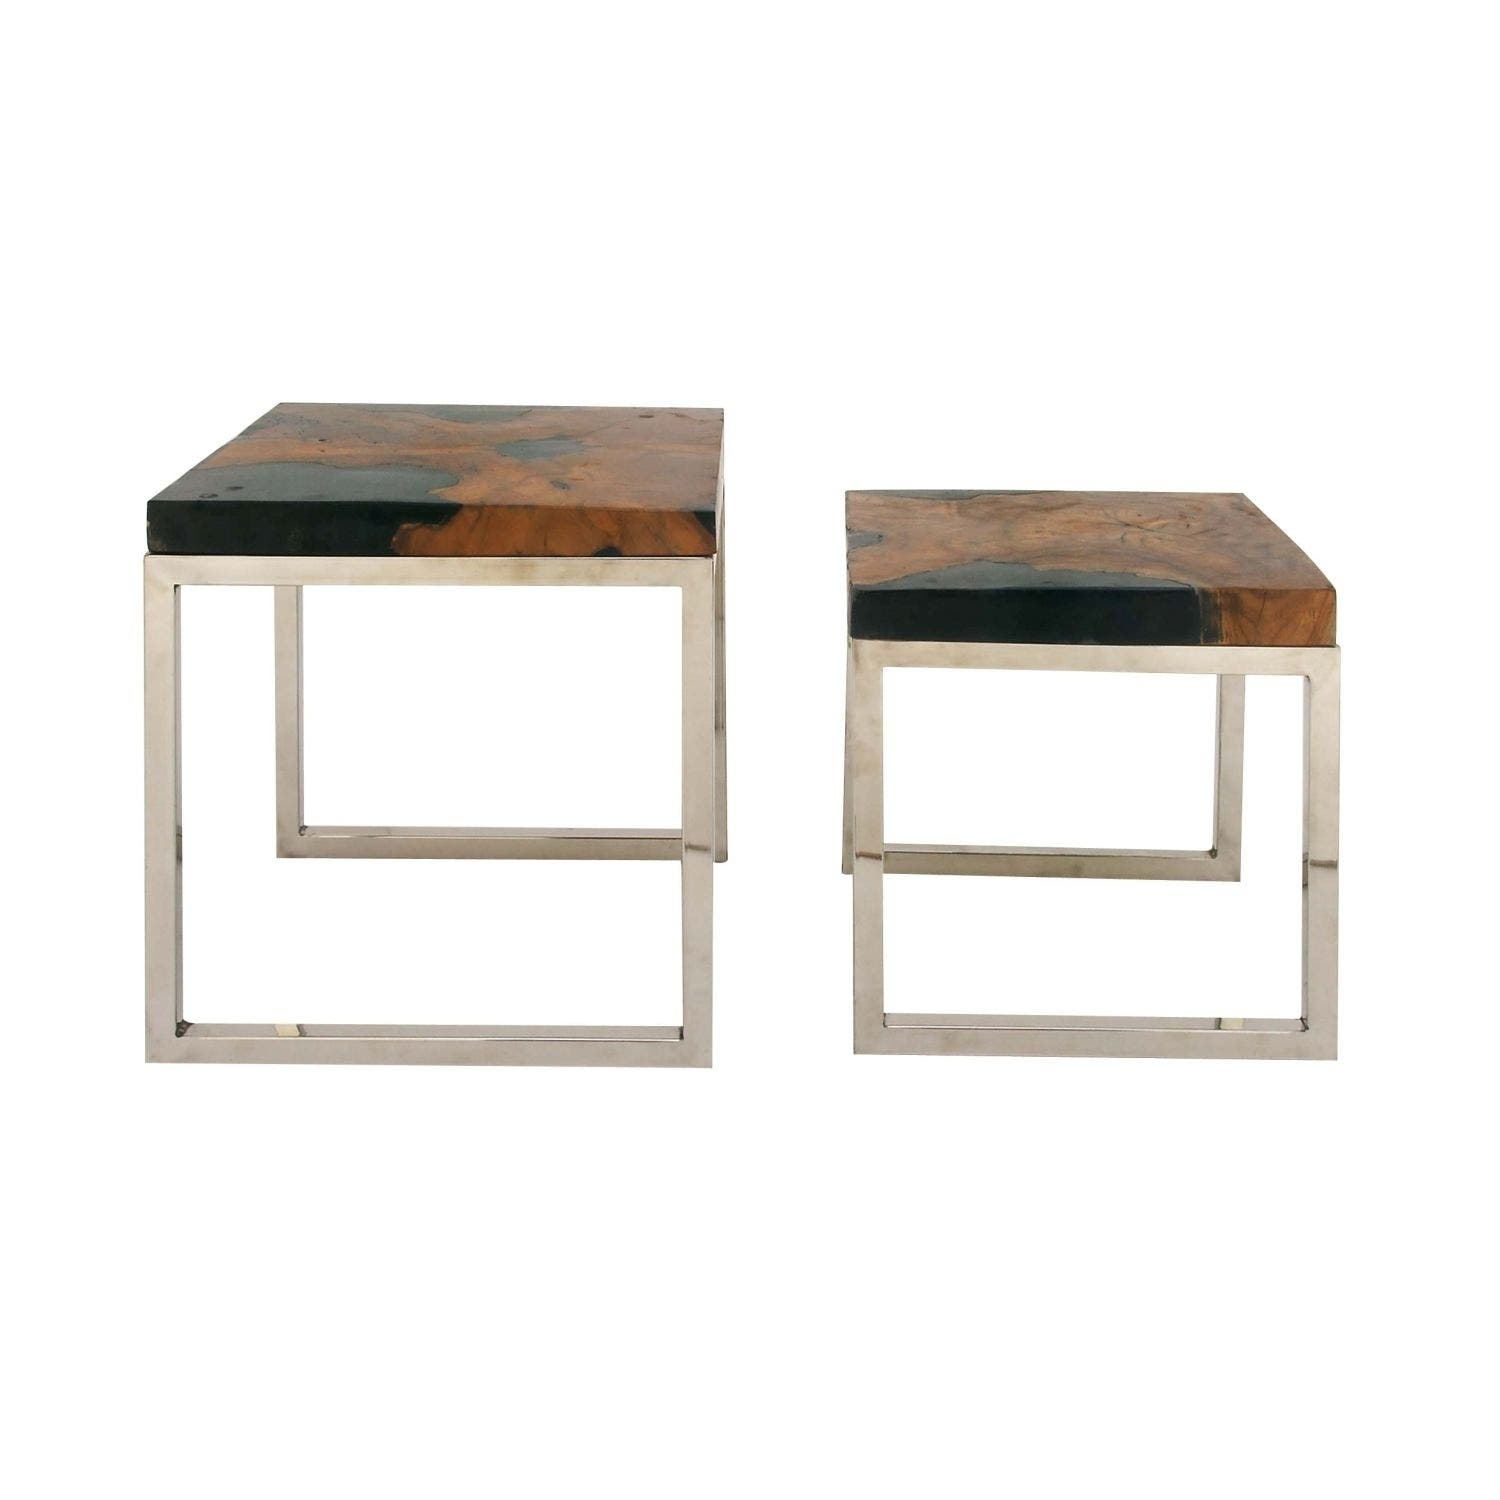 Coffee console sofa end tables for less for Coffee tables 16 inches high